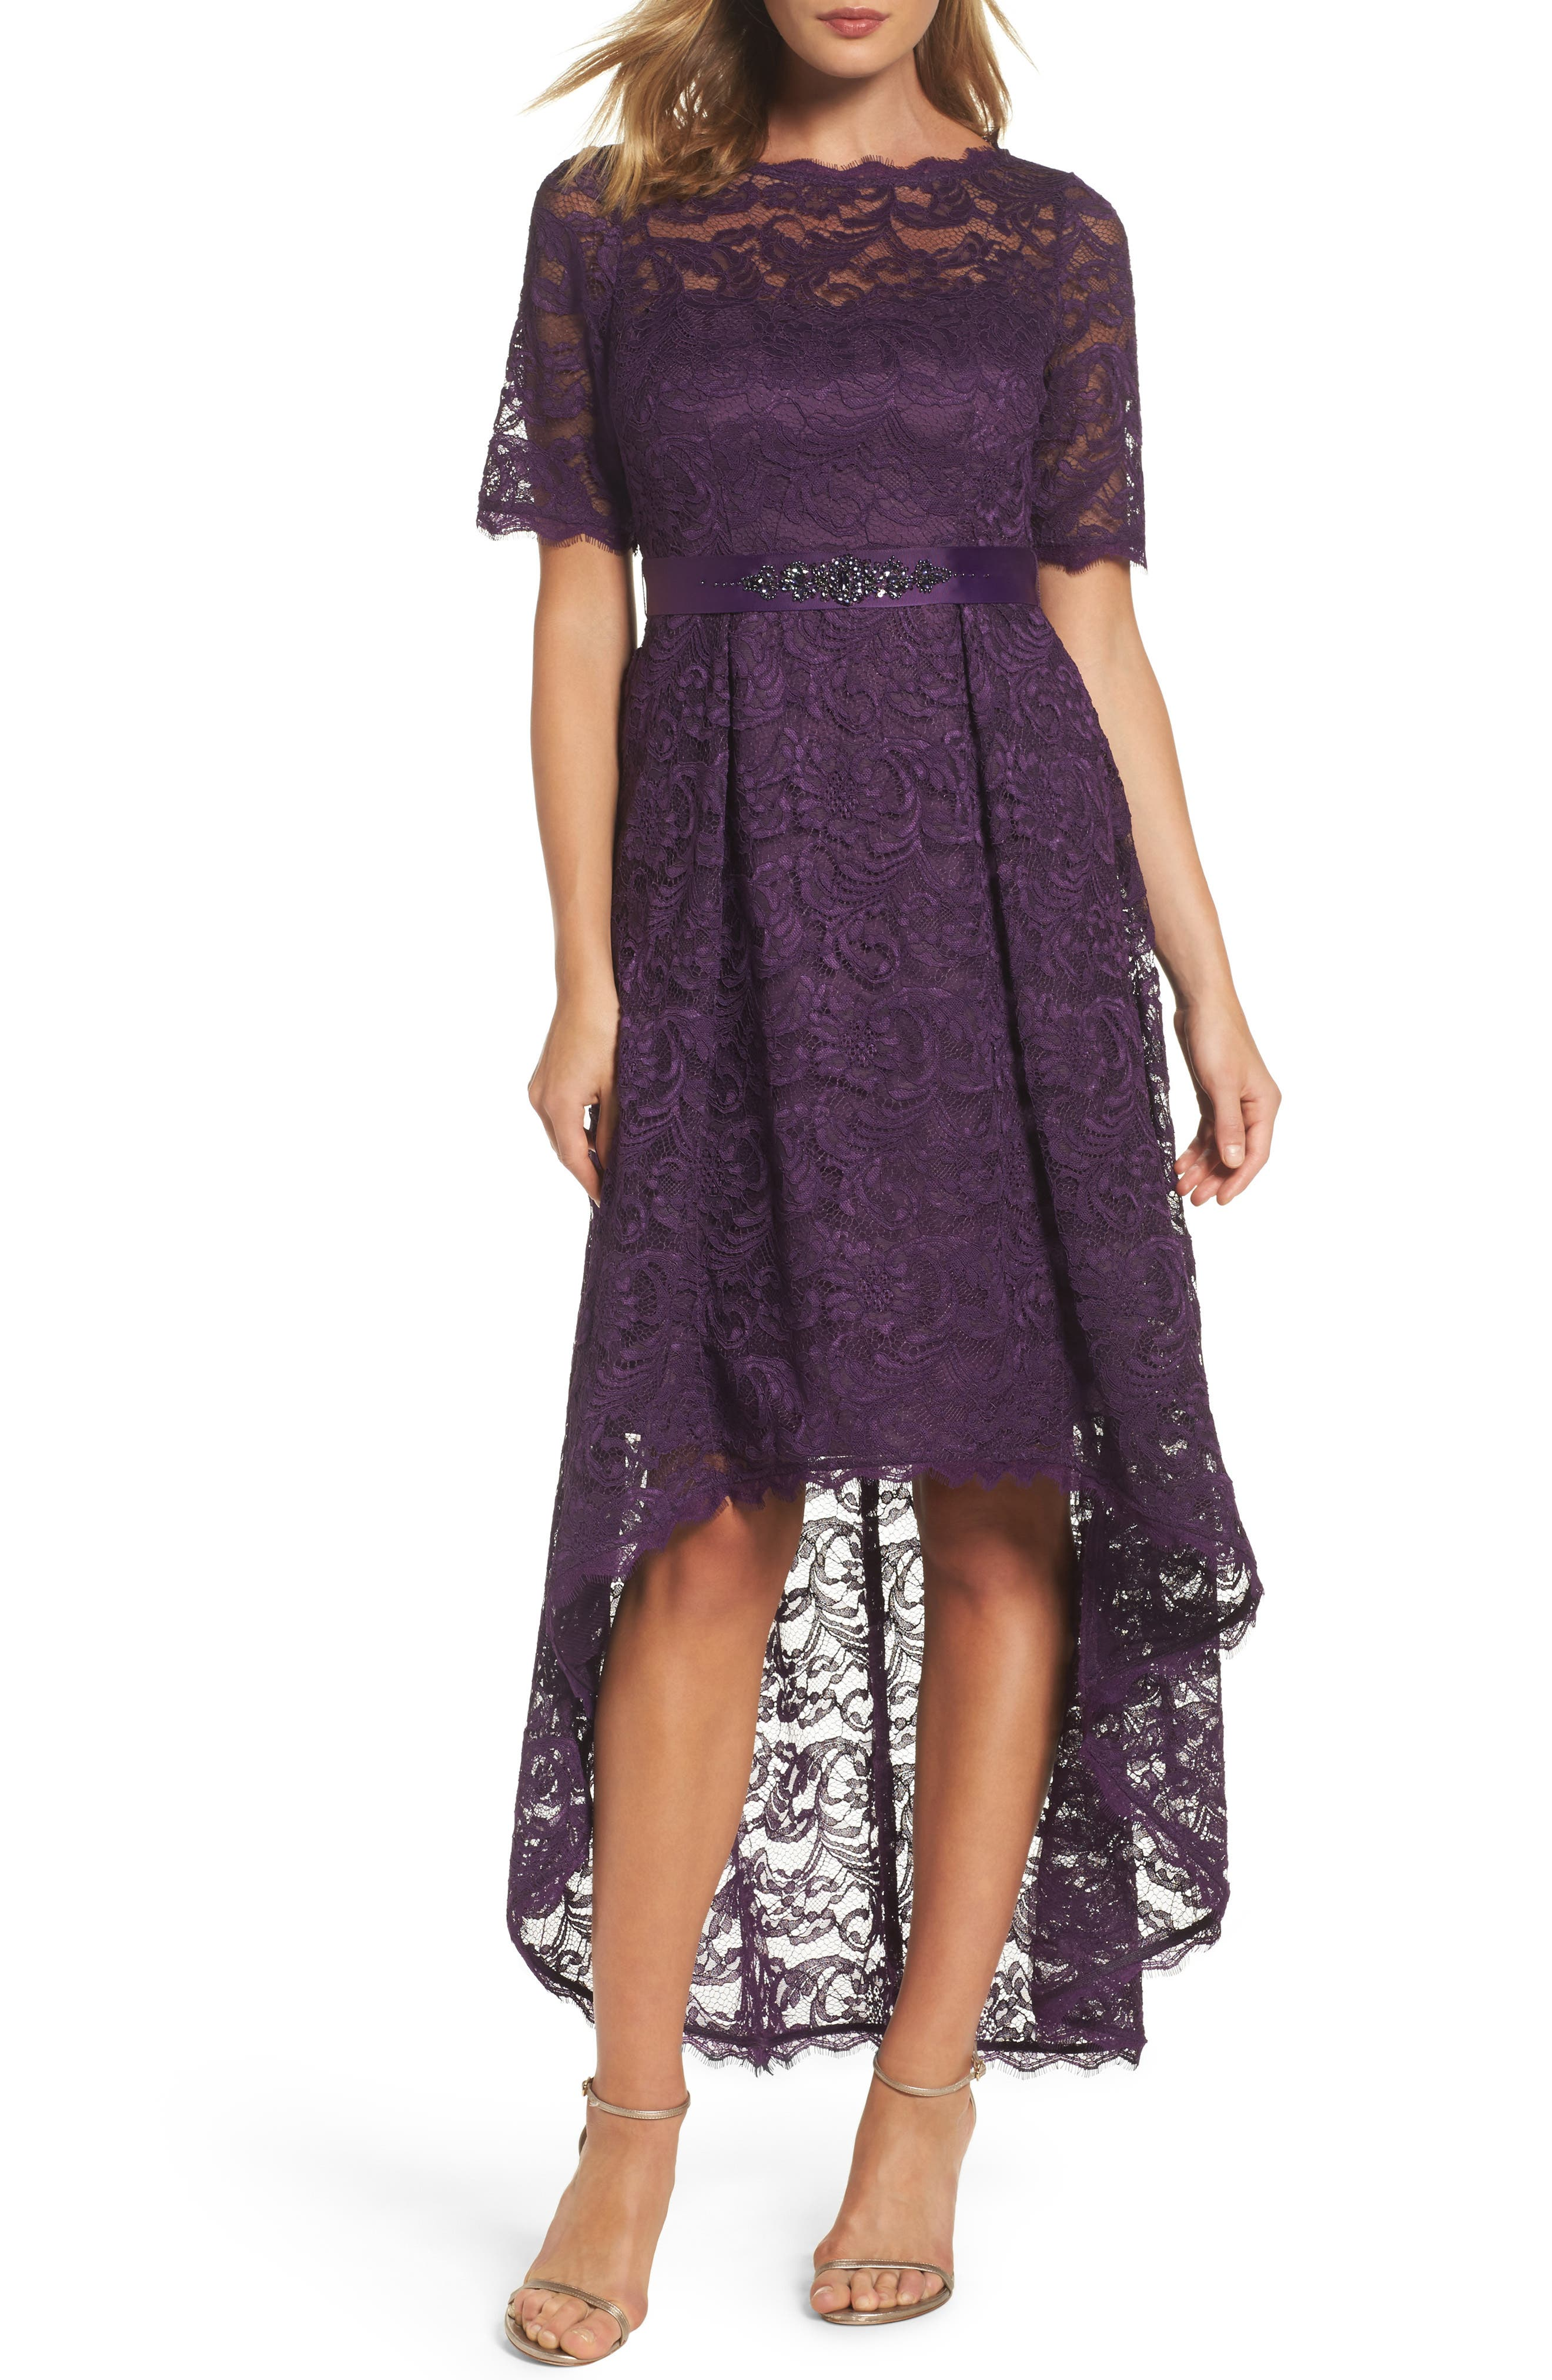 Alternate Image 1 Selected - Adrianna Papell High/Low Lace Dress